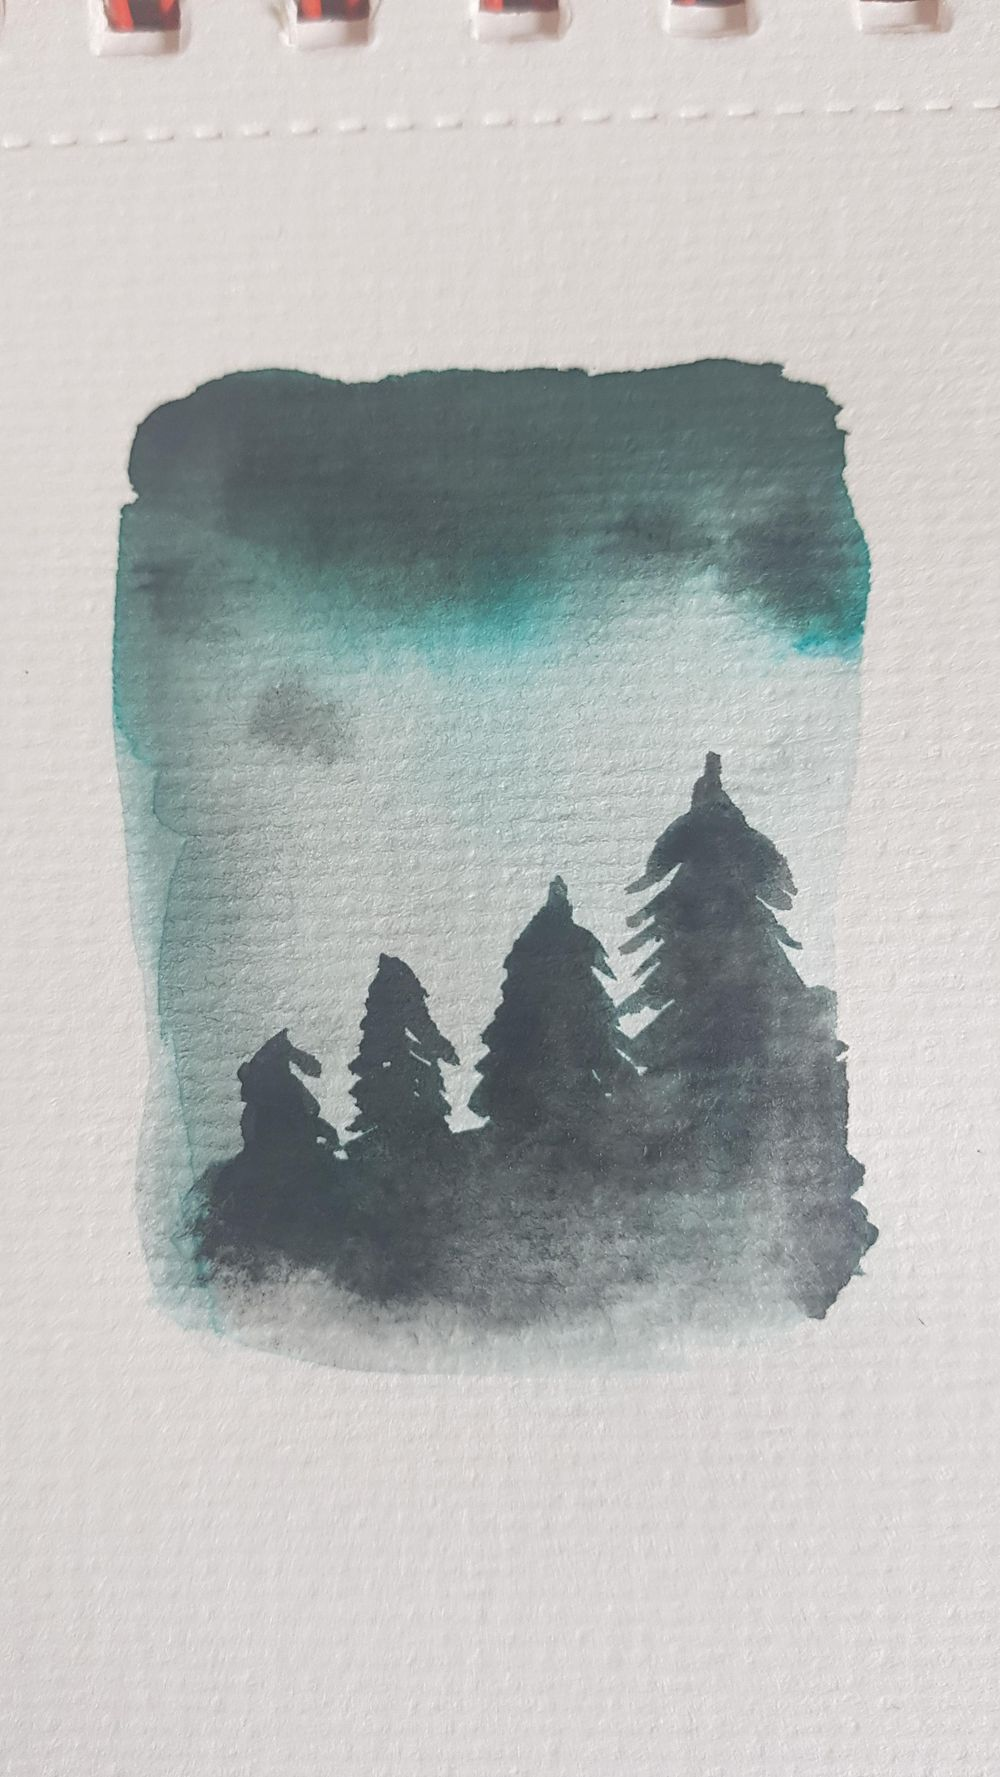 Watercolour experiments - image 1 - student project